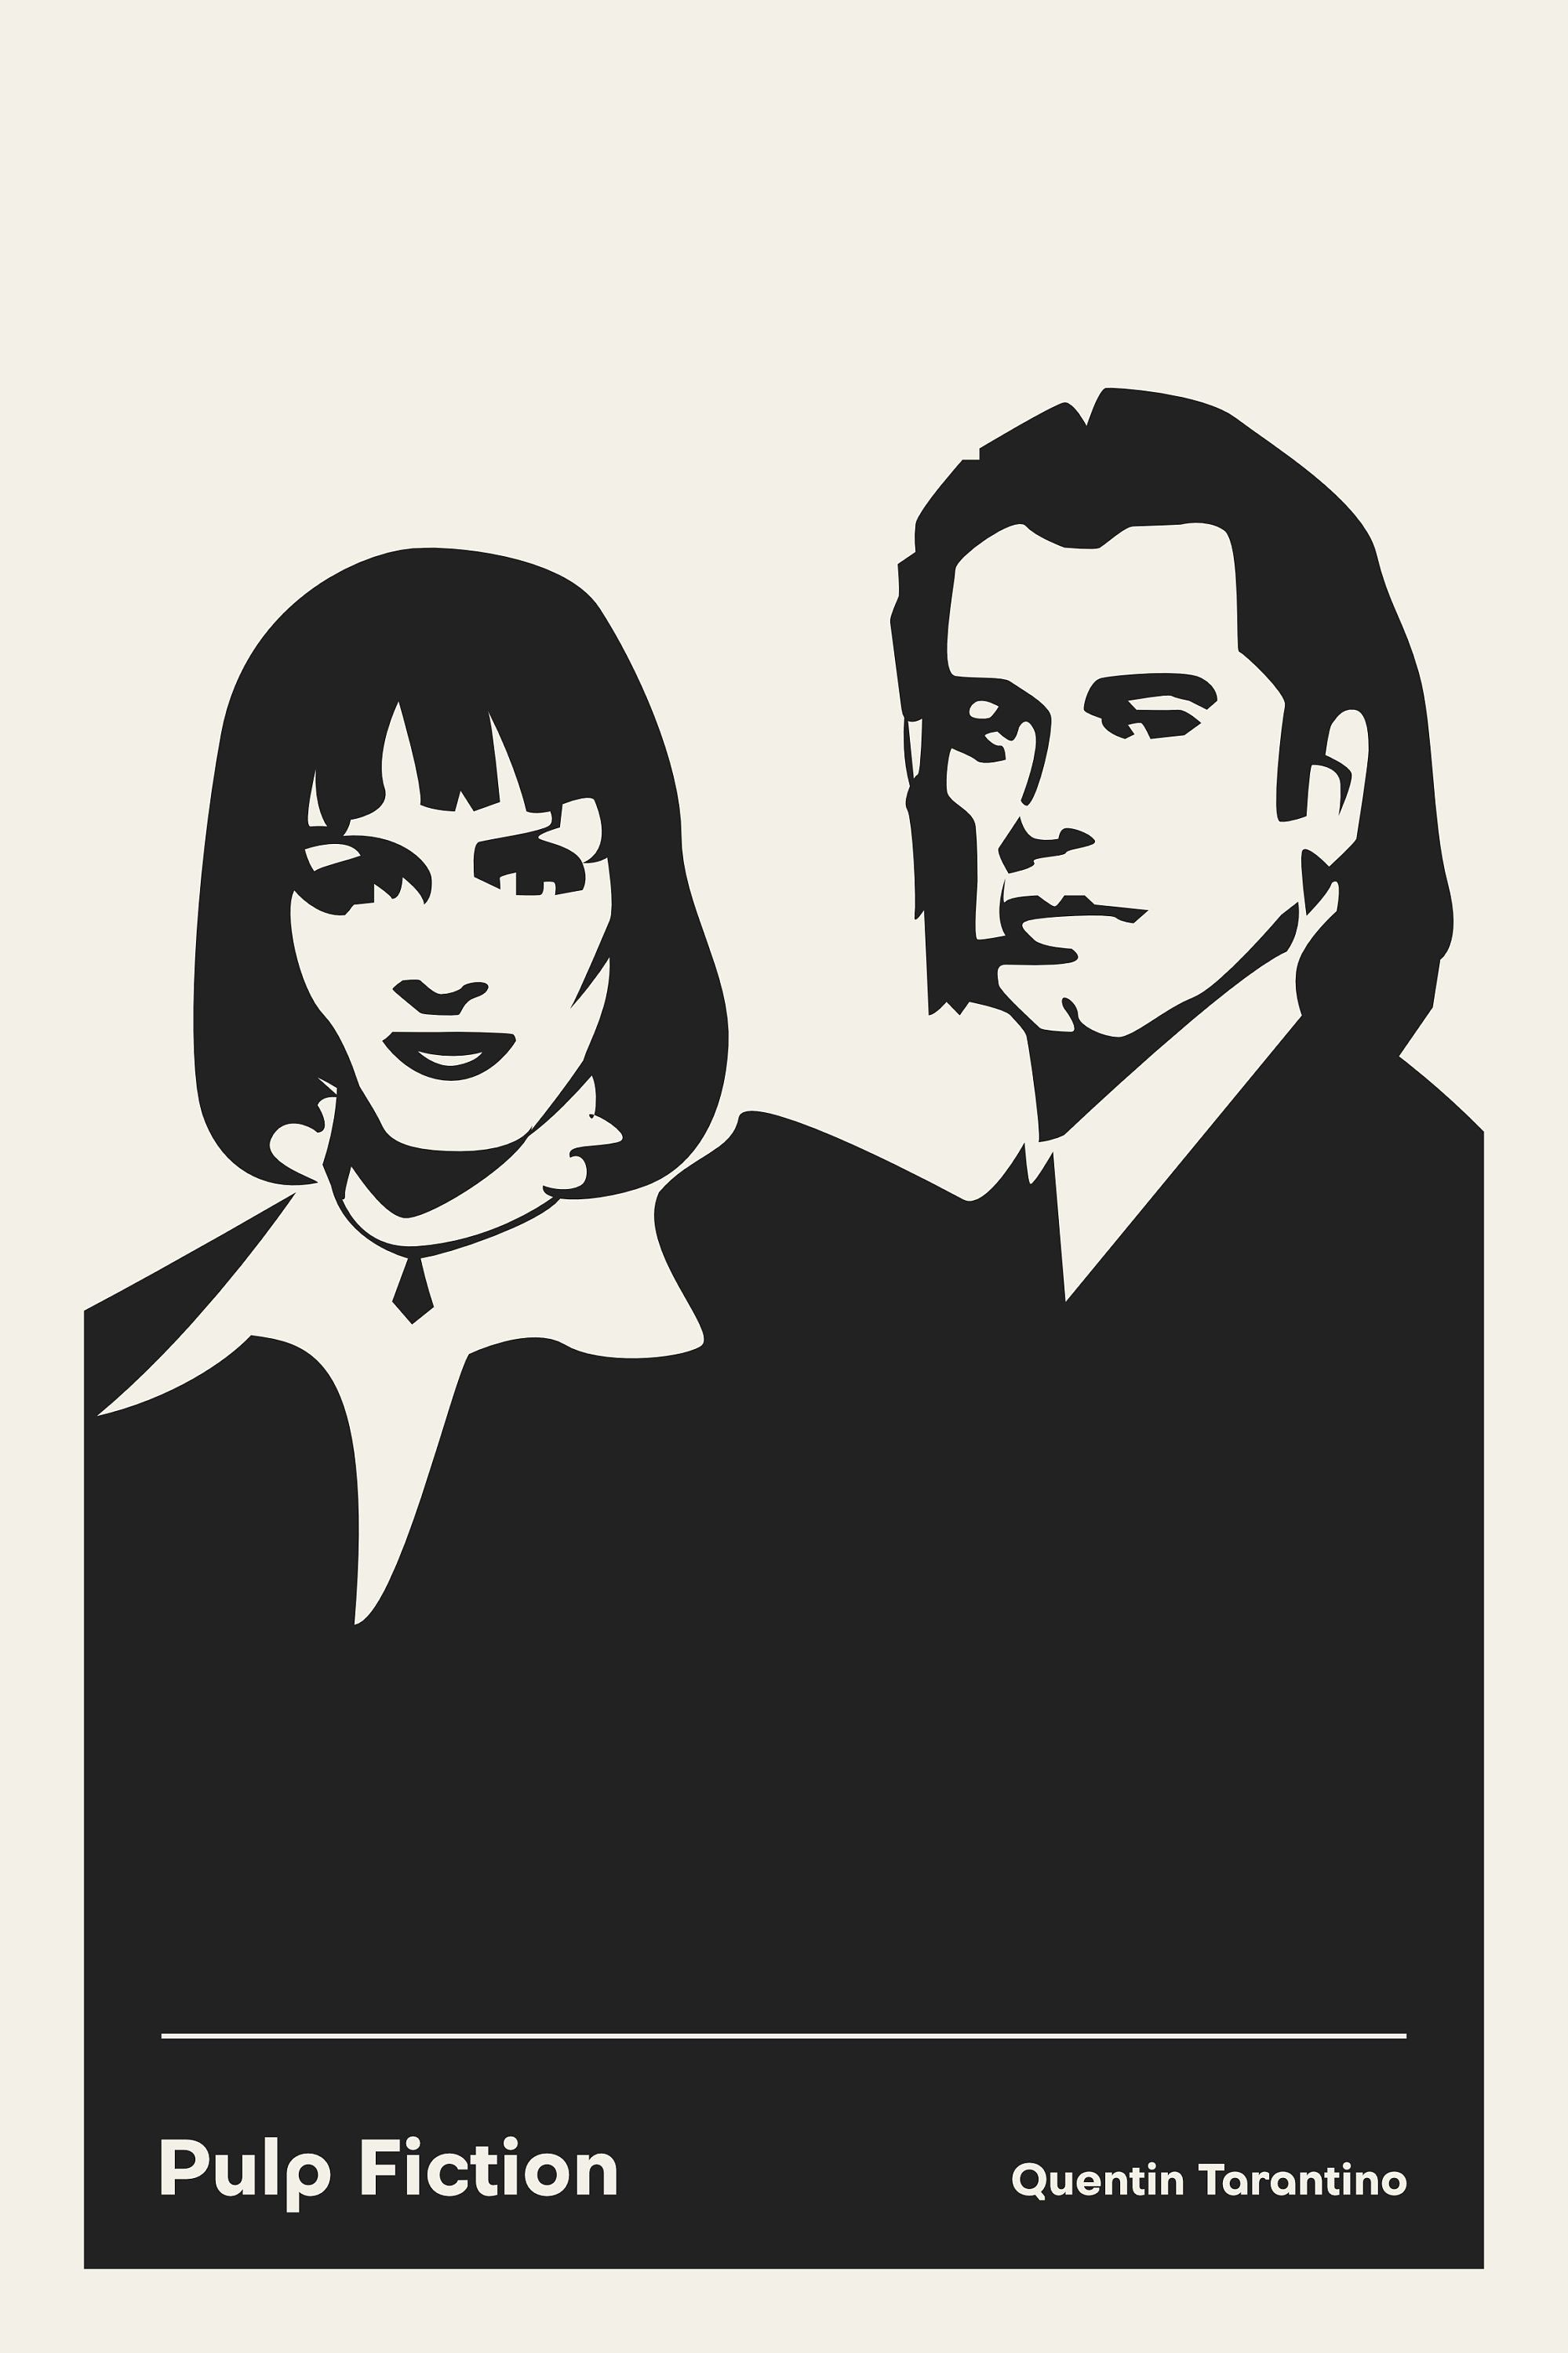 Pulp fiction movie poster quentin tarantino poster 24x36 film poster black and white